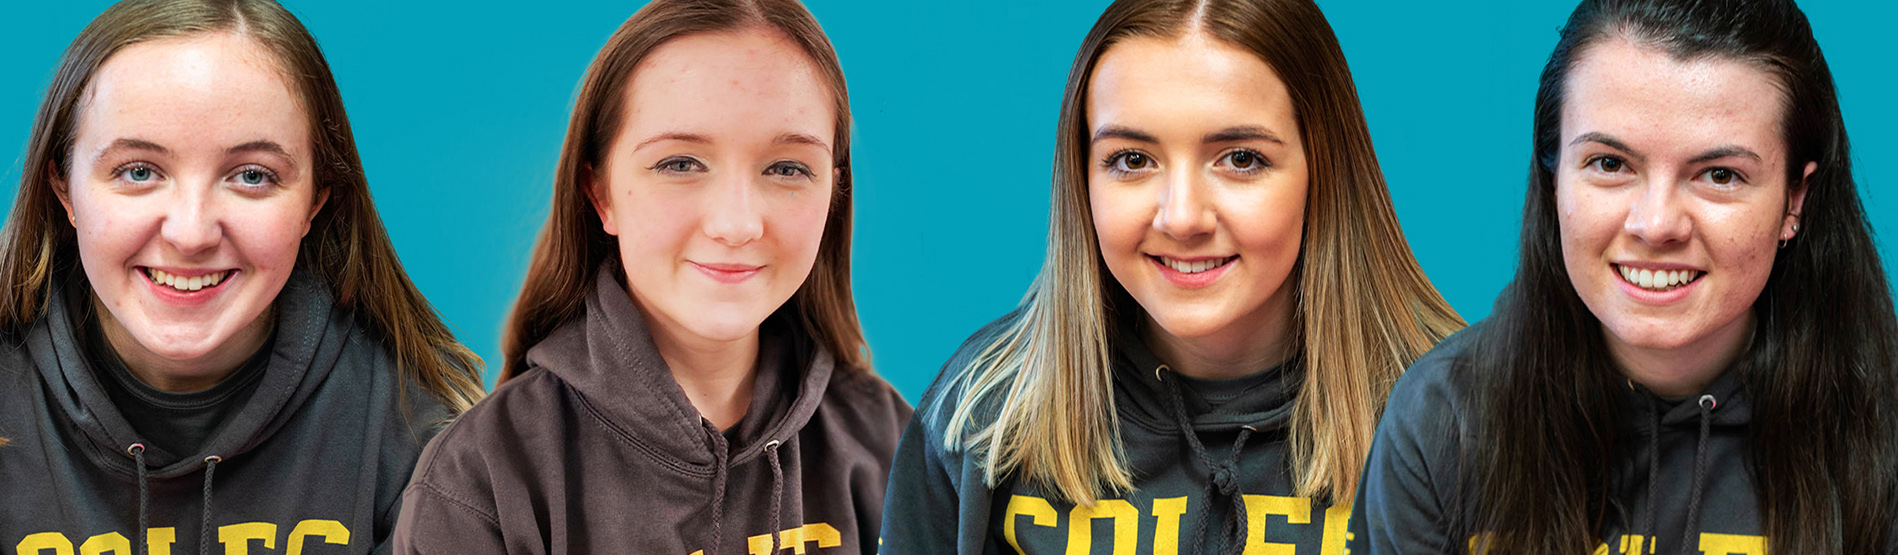 Four Coleg Cymraeg Ambassadors who are studying at Swansea University